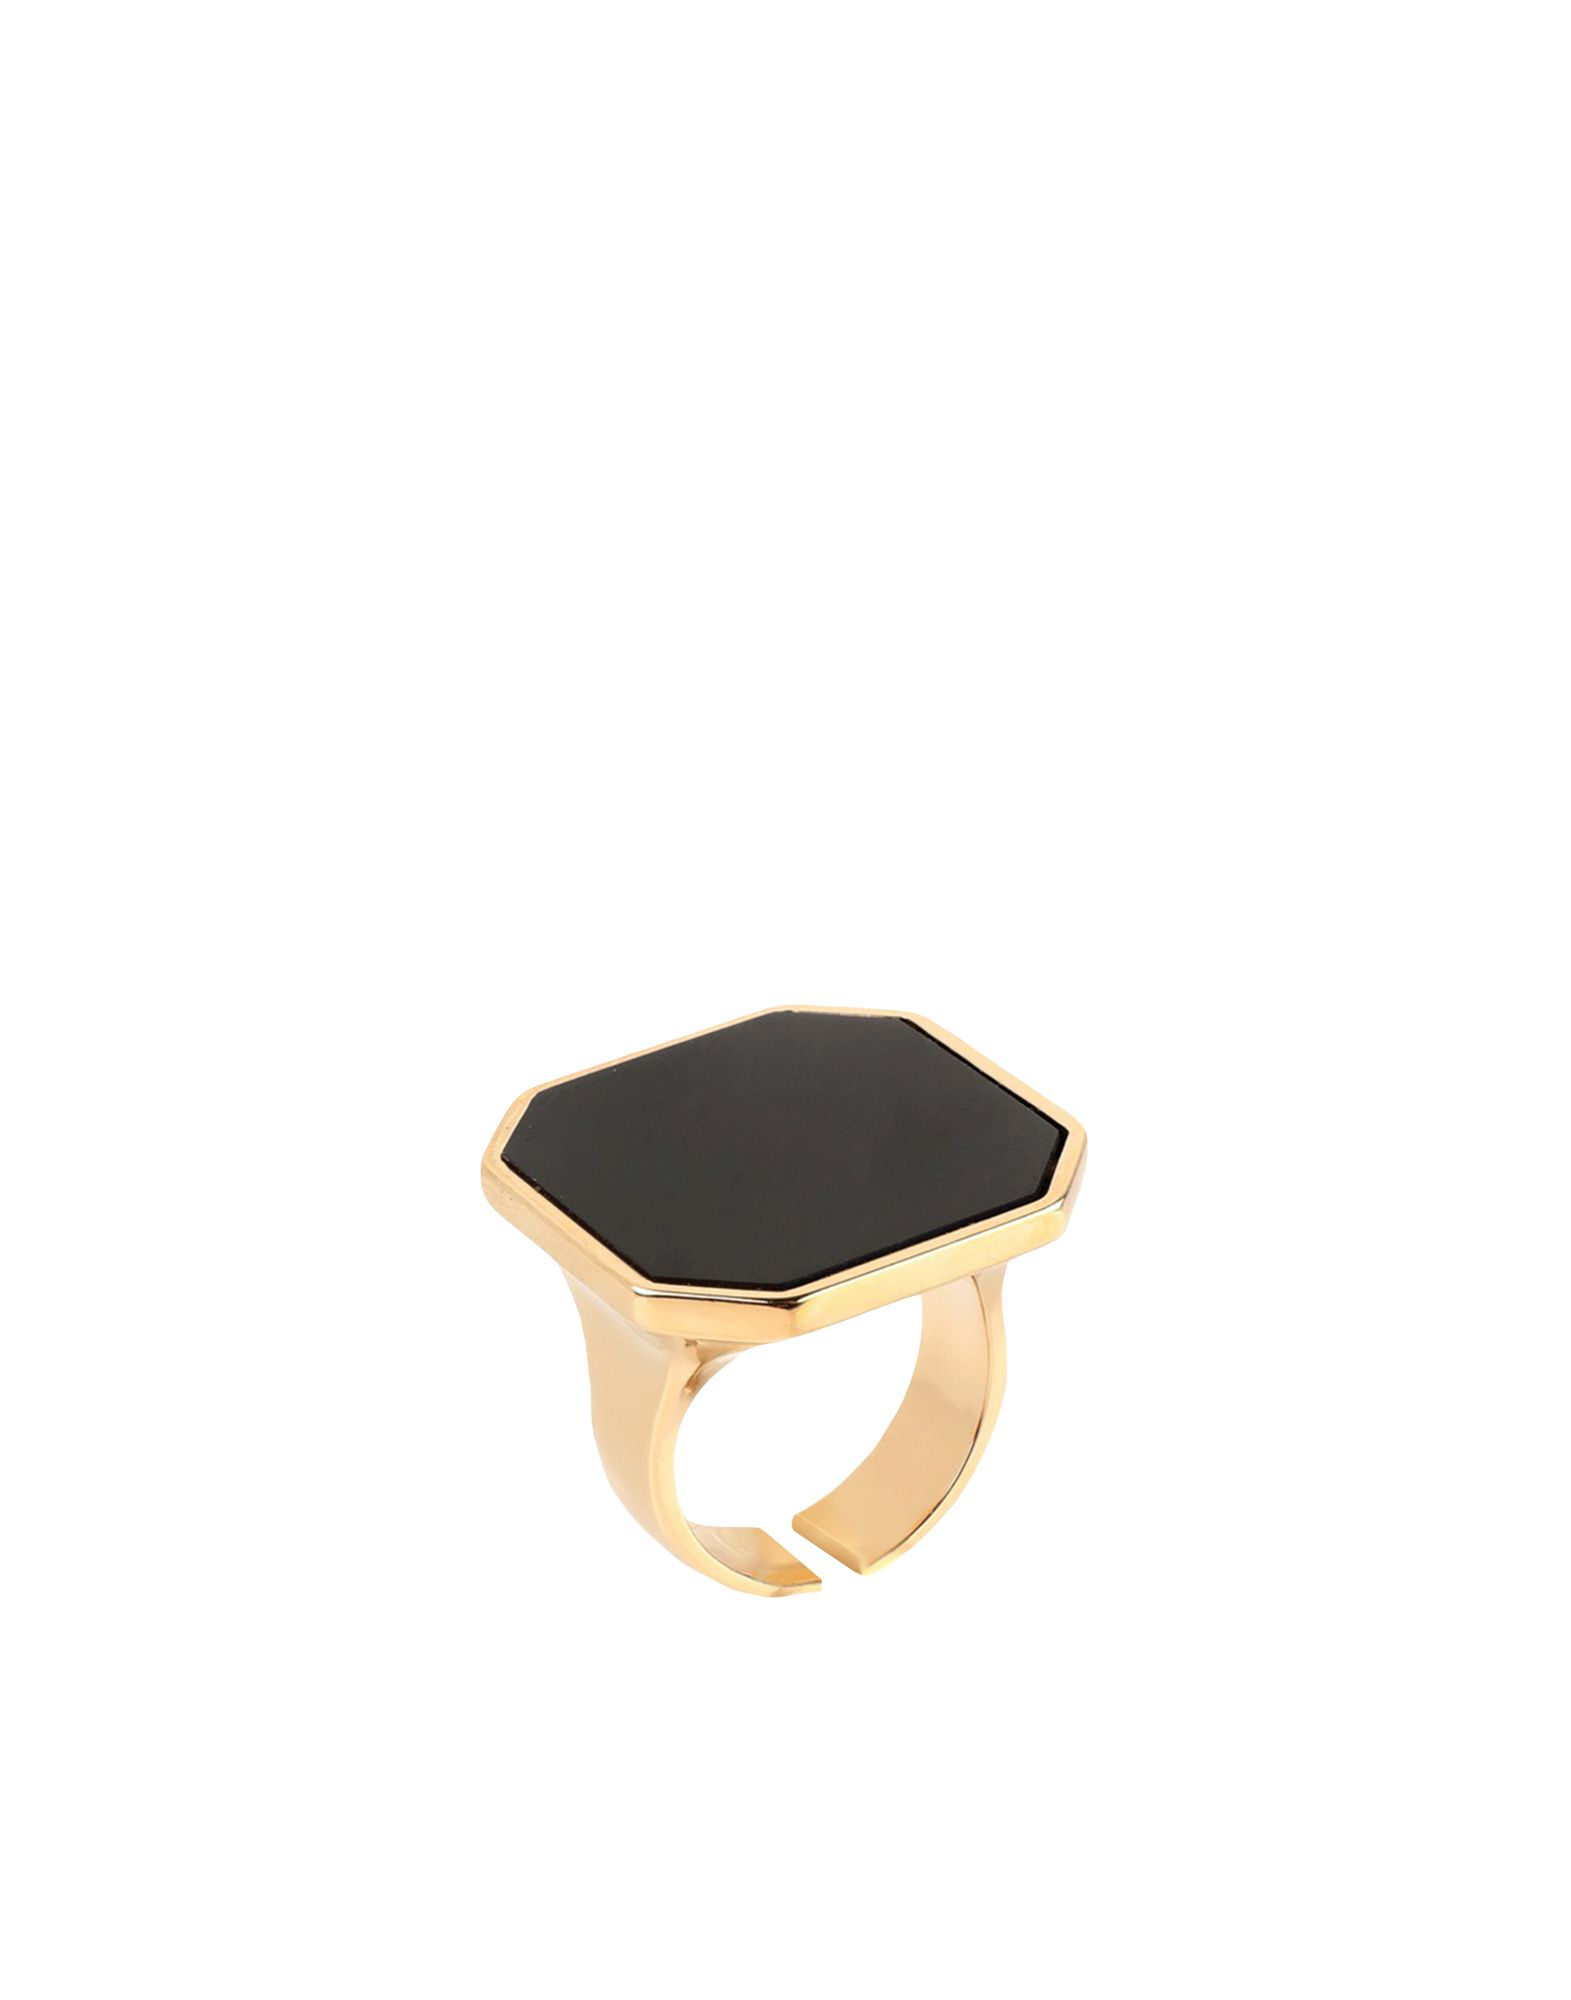 ISABEL MARANT Rings. logo, no fastening, any incidental differences in the material\\\'s pattern are a guarantee of the product\\\'s originality. 80% Brass, 20% Natural Stone